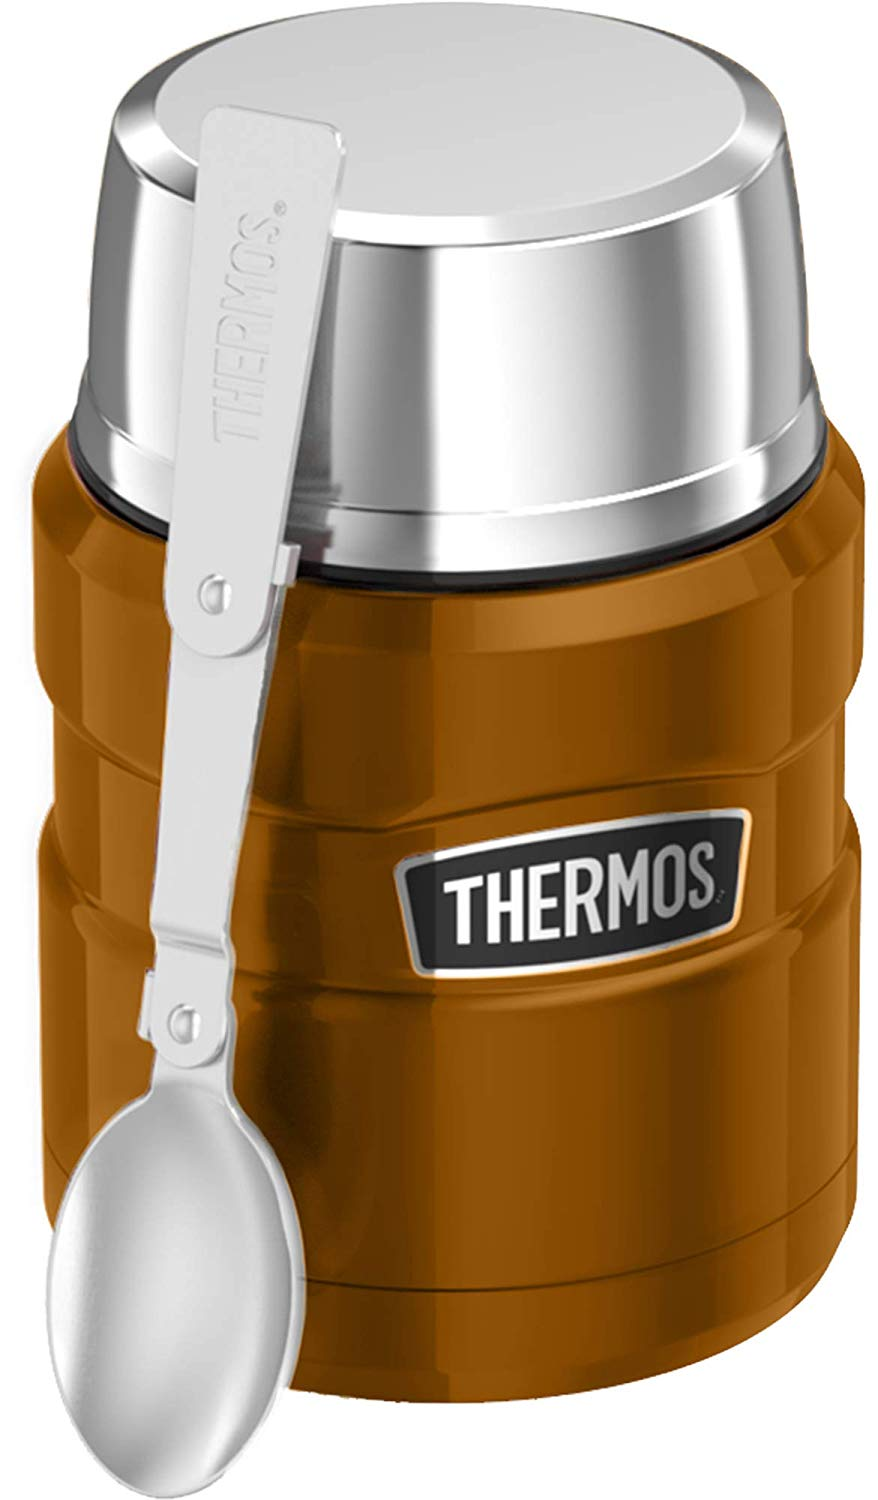 Thermos Food Flask with spoon